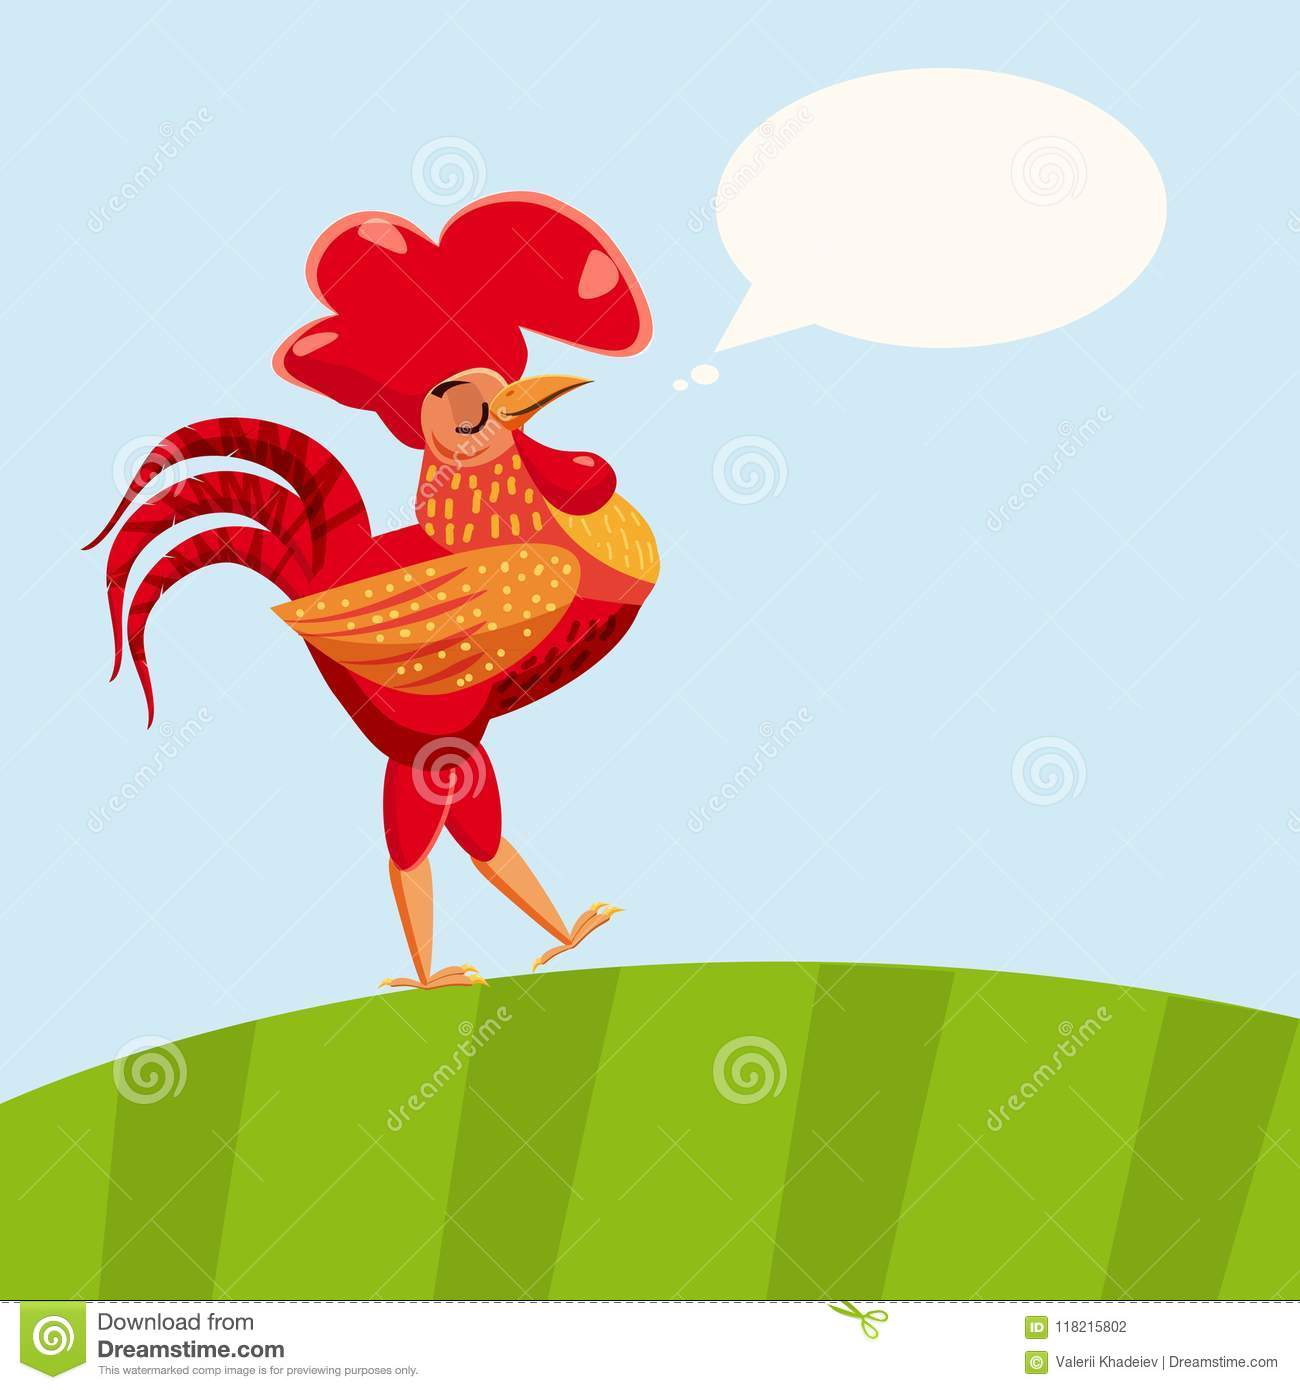 Rooster red isolated. Cartoon style vector illustration. Template for your design works.